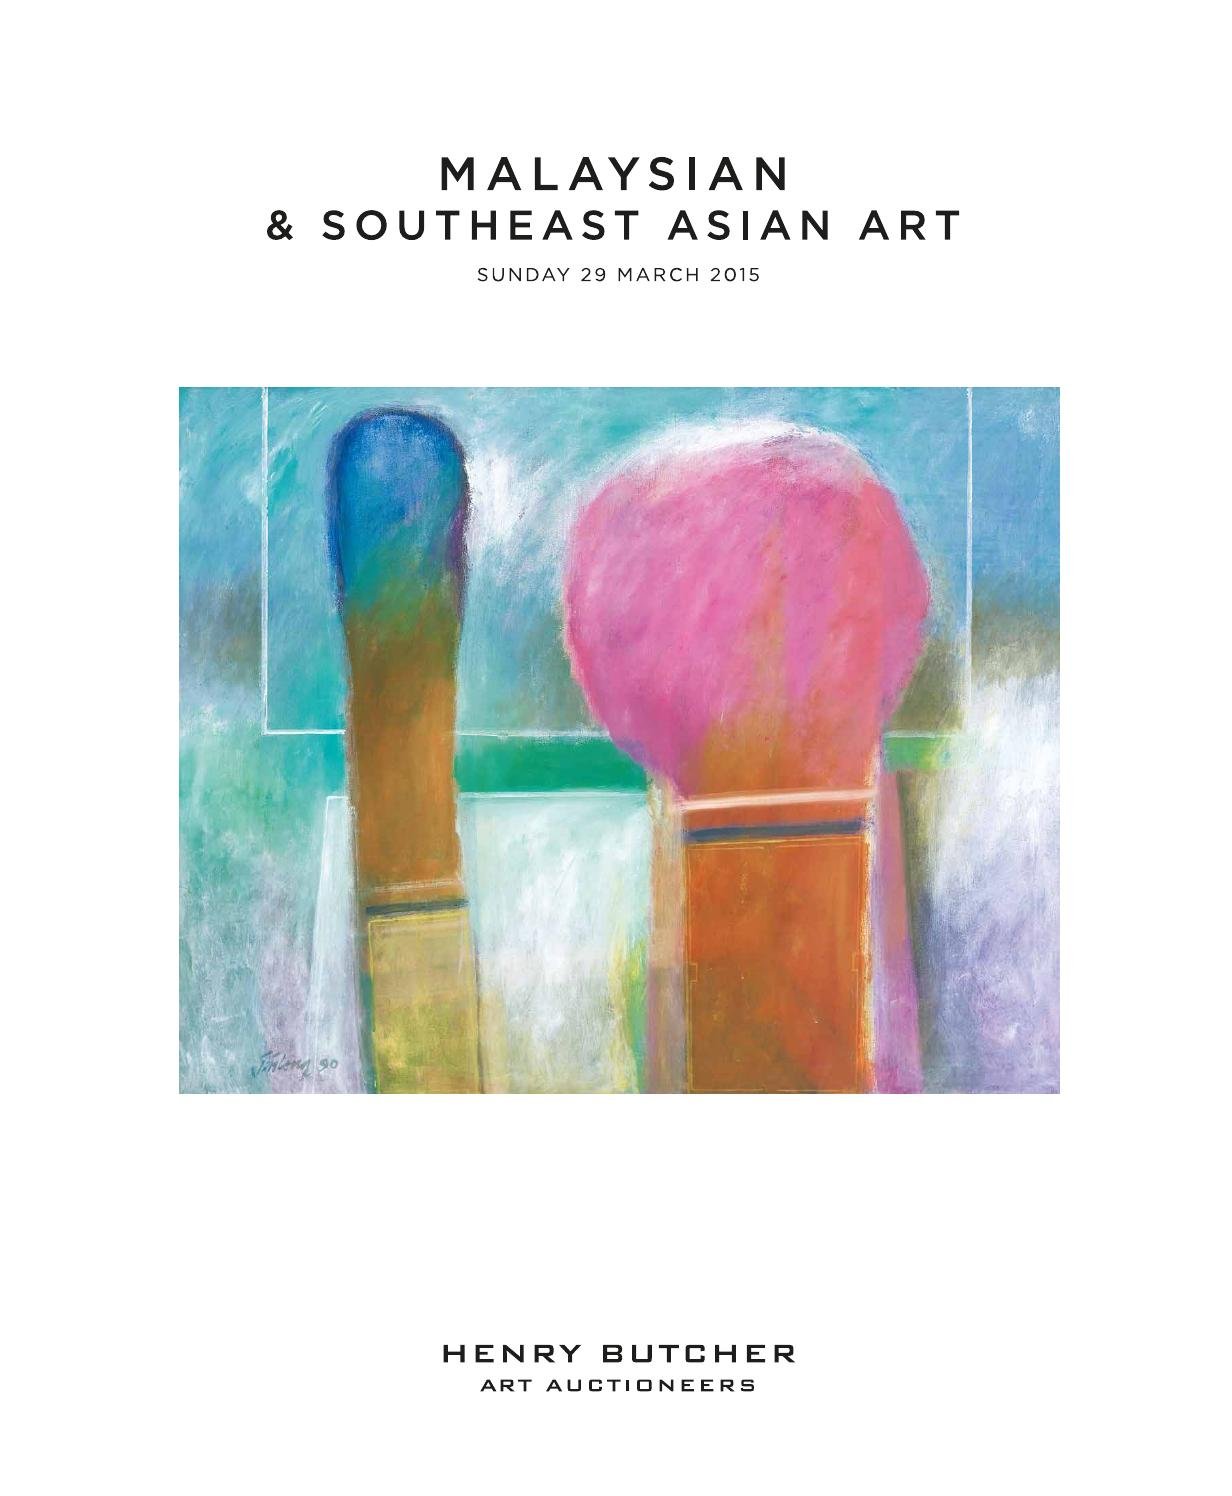 Malaysian Southeast Asian Art 29 March 2015 By Henry Butcher Art Auctioneers Issuu